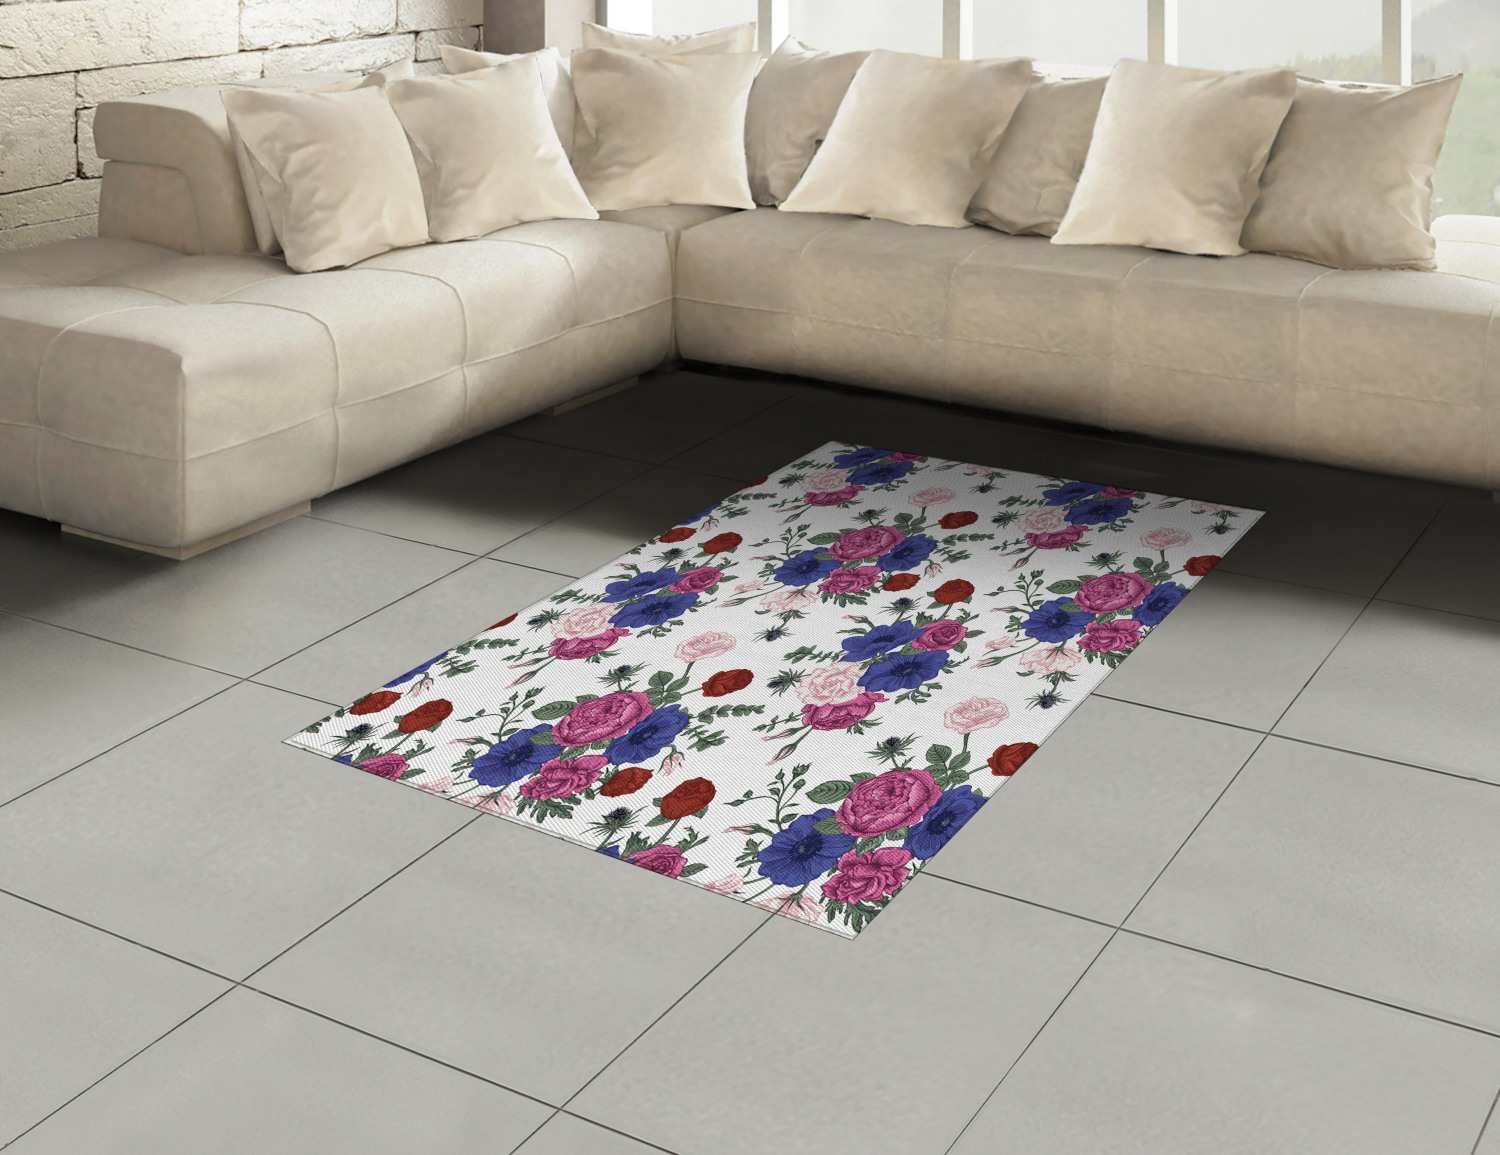 Anemone-Flower-Area-Rug-Decor-Flat-Woven-Accent-Rug-Home-Decor-2-Sizes-Ambesonne thumbnail 10